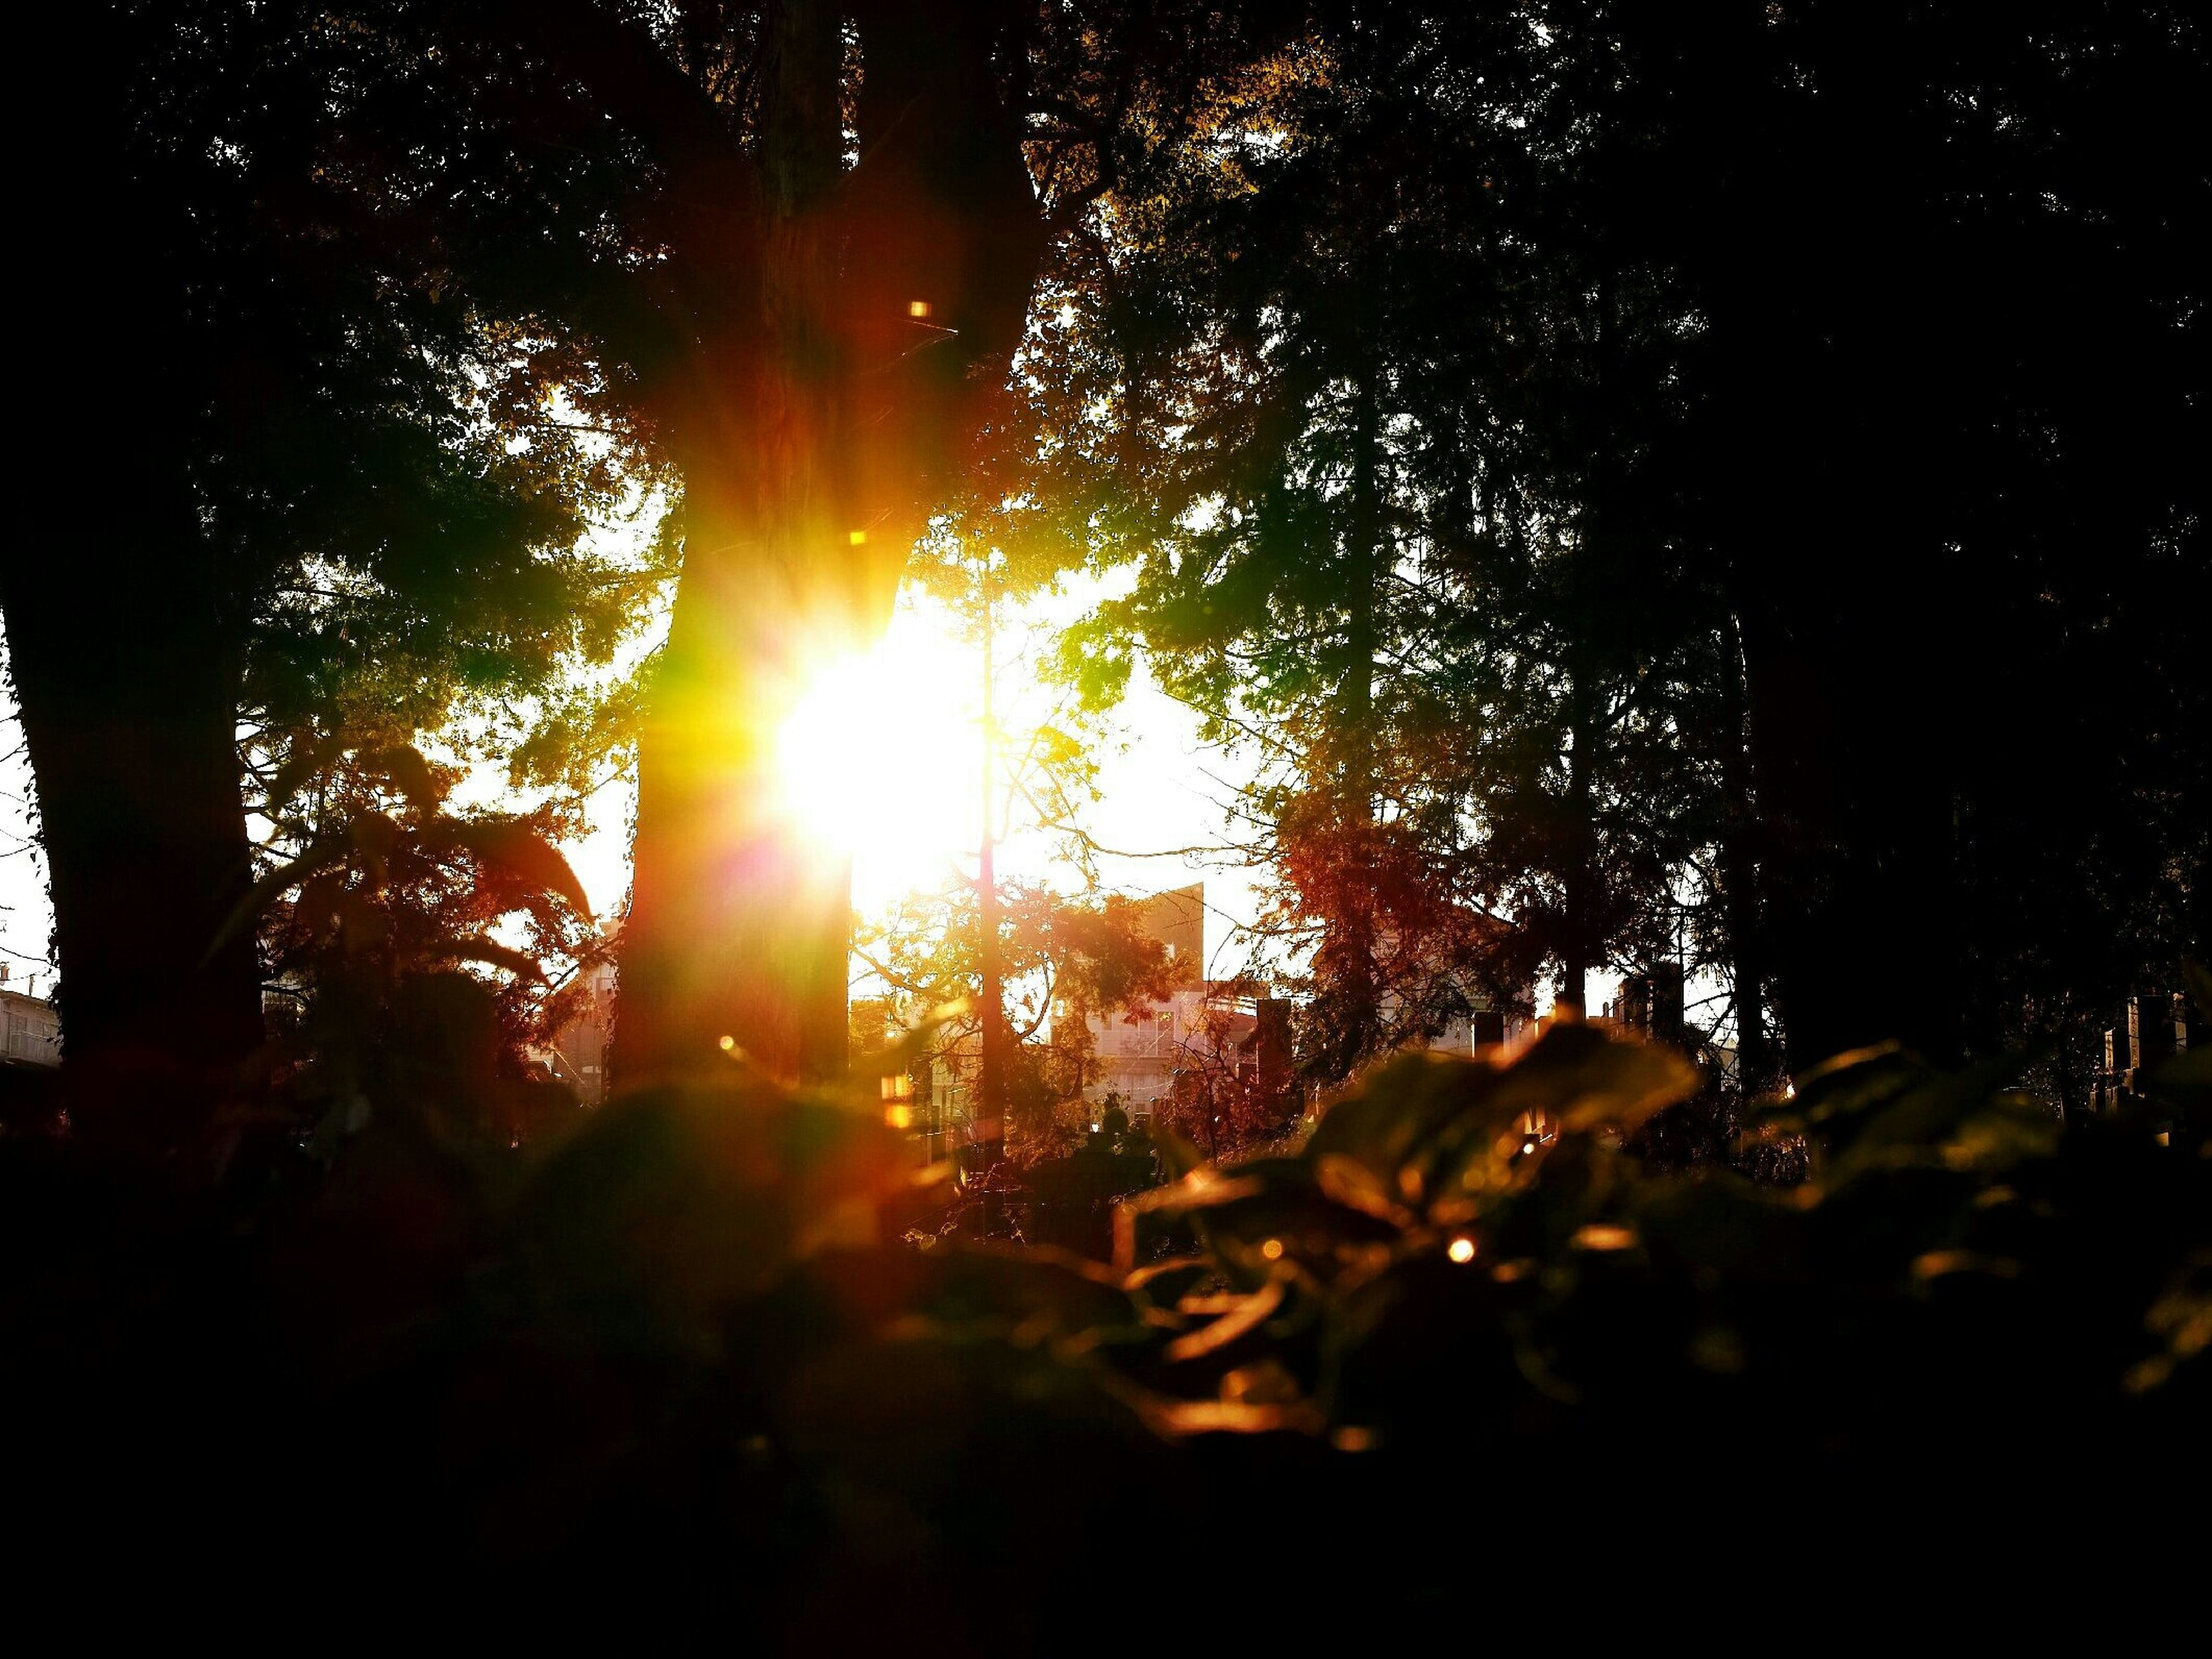 sun, tree, sunbeam, sunlight, tranquility, lens flare, forest, nature, tranquil scene, sunset, growth, beauty in nature, back lit, silhouette, scenics, field, glowing, woodland, outdoors, landscape